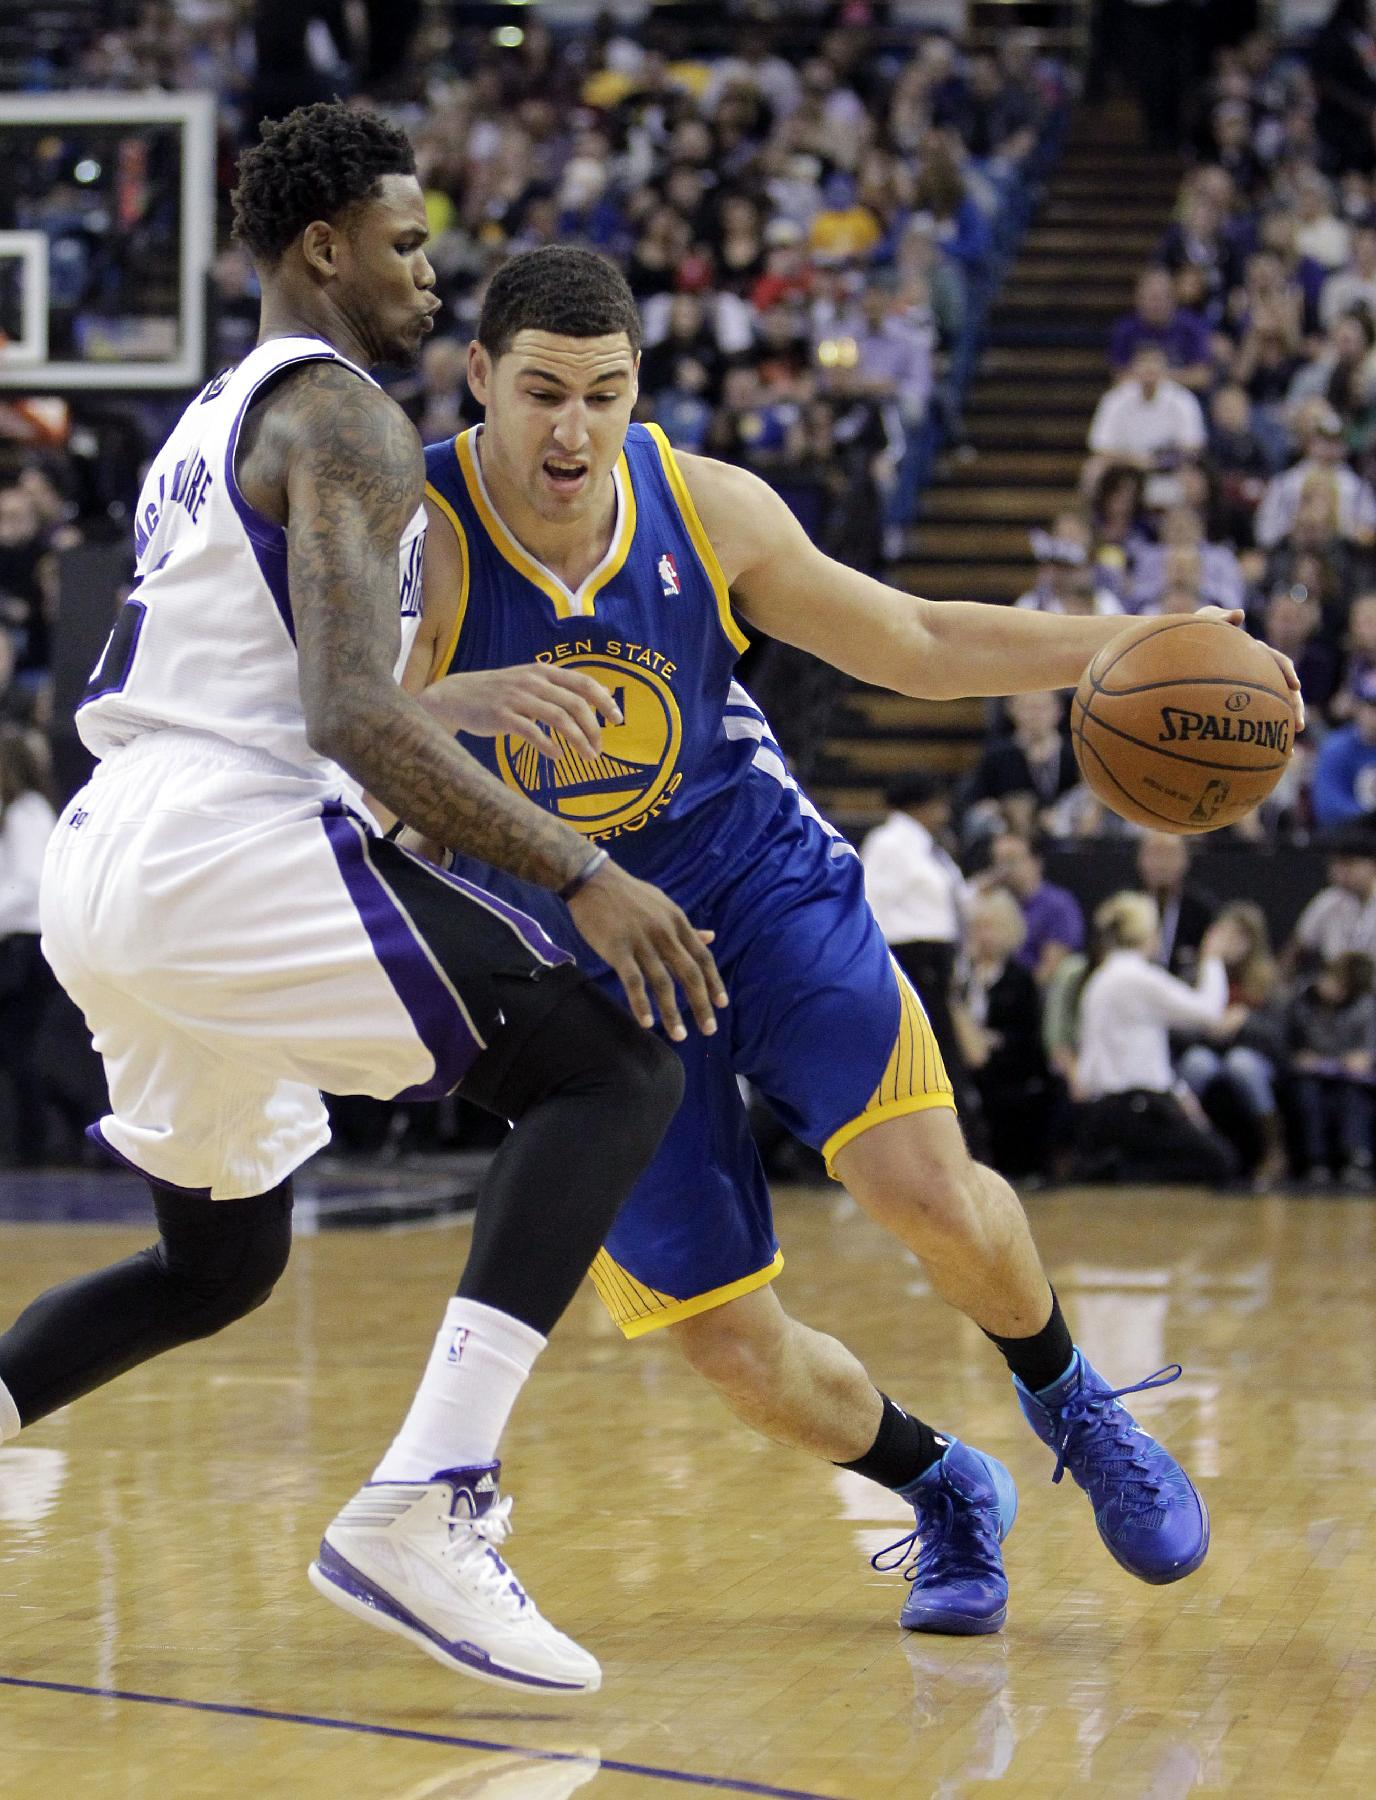 Golden State Warriors guard Klay Thompson, right, drives against Sacramento Kings guard Ben McLemore during the first quarter of an NBA basketball game in Sacramento, Calif., Sunday, Dec. 1, 2013